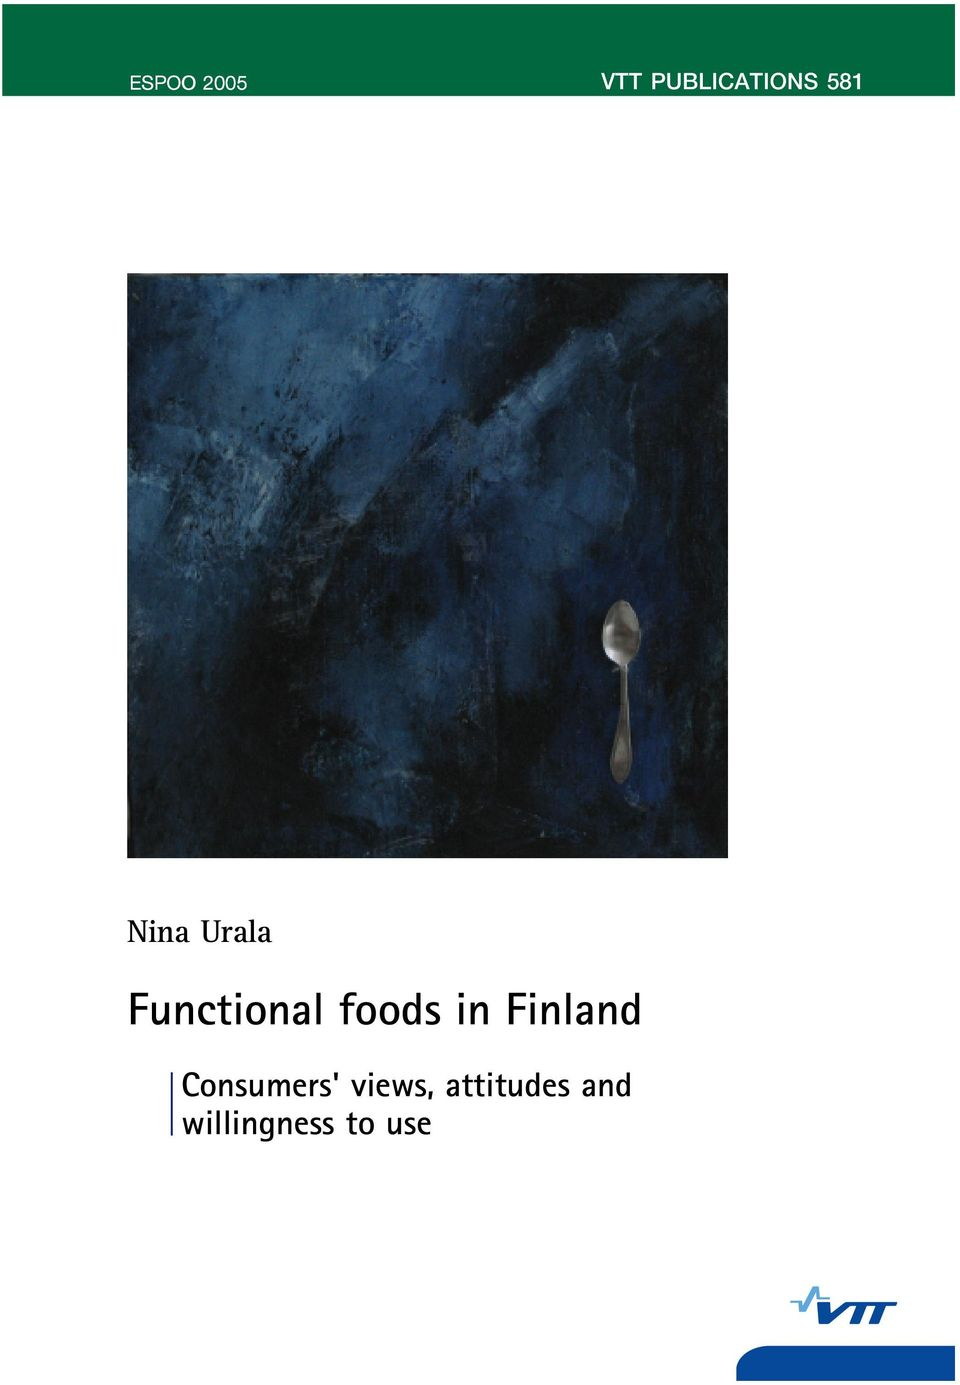 foods in Finland Consumers'